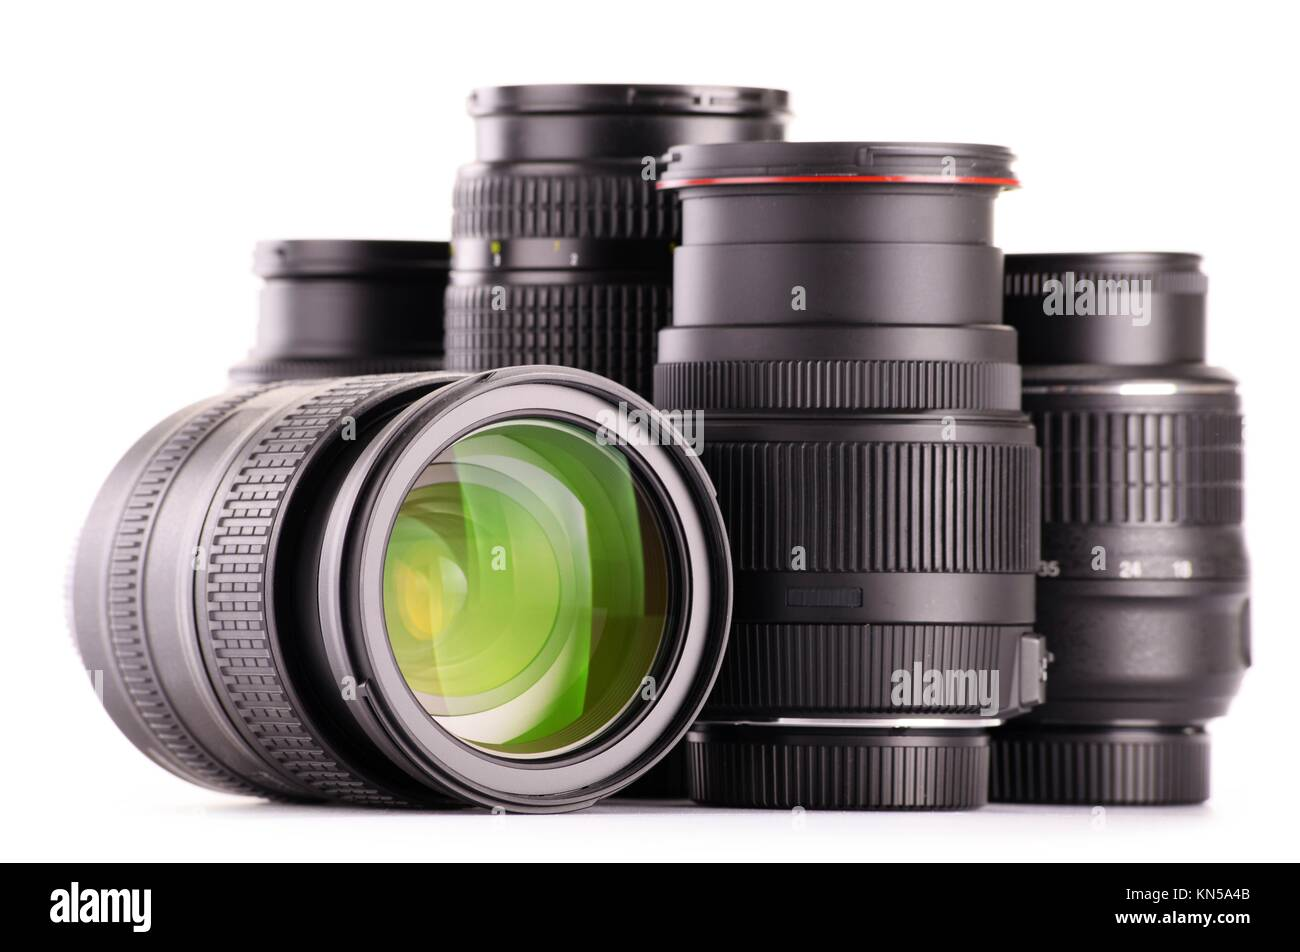 Composition with photo zoom lenses isolated on white background. - Stock Image